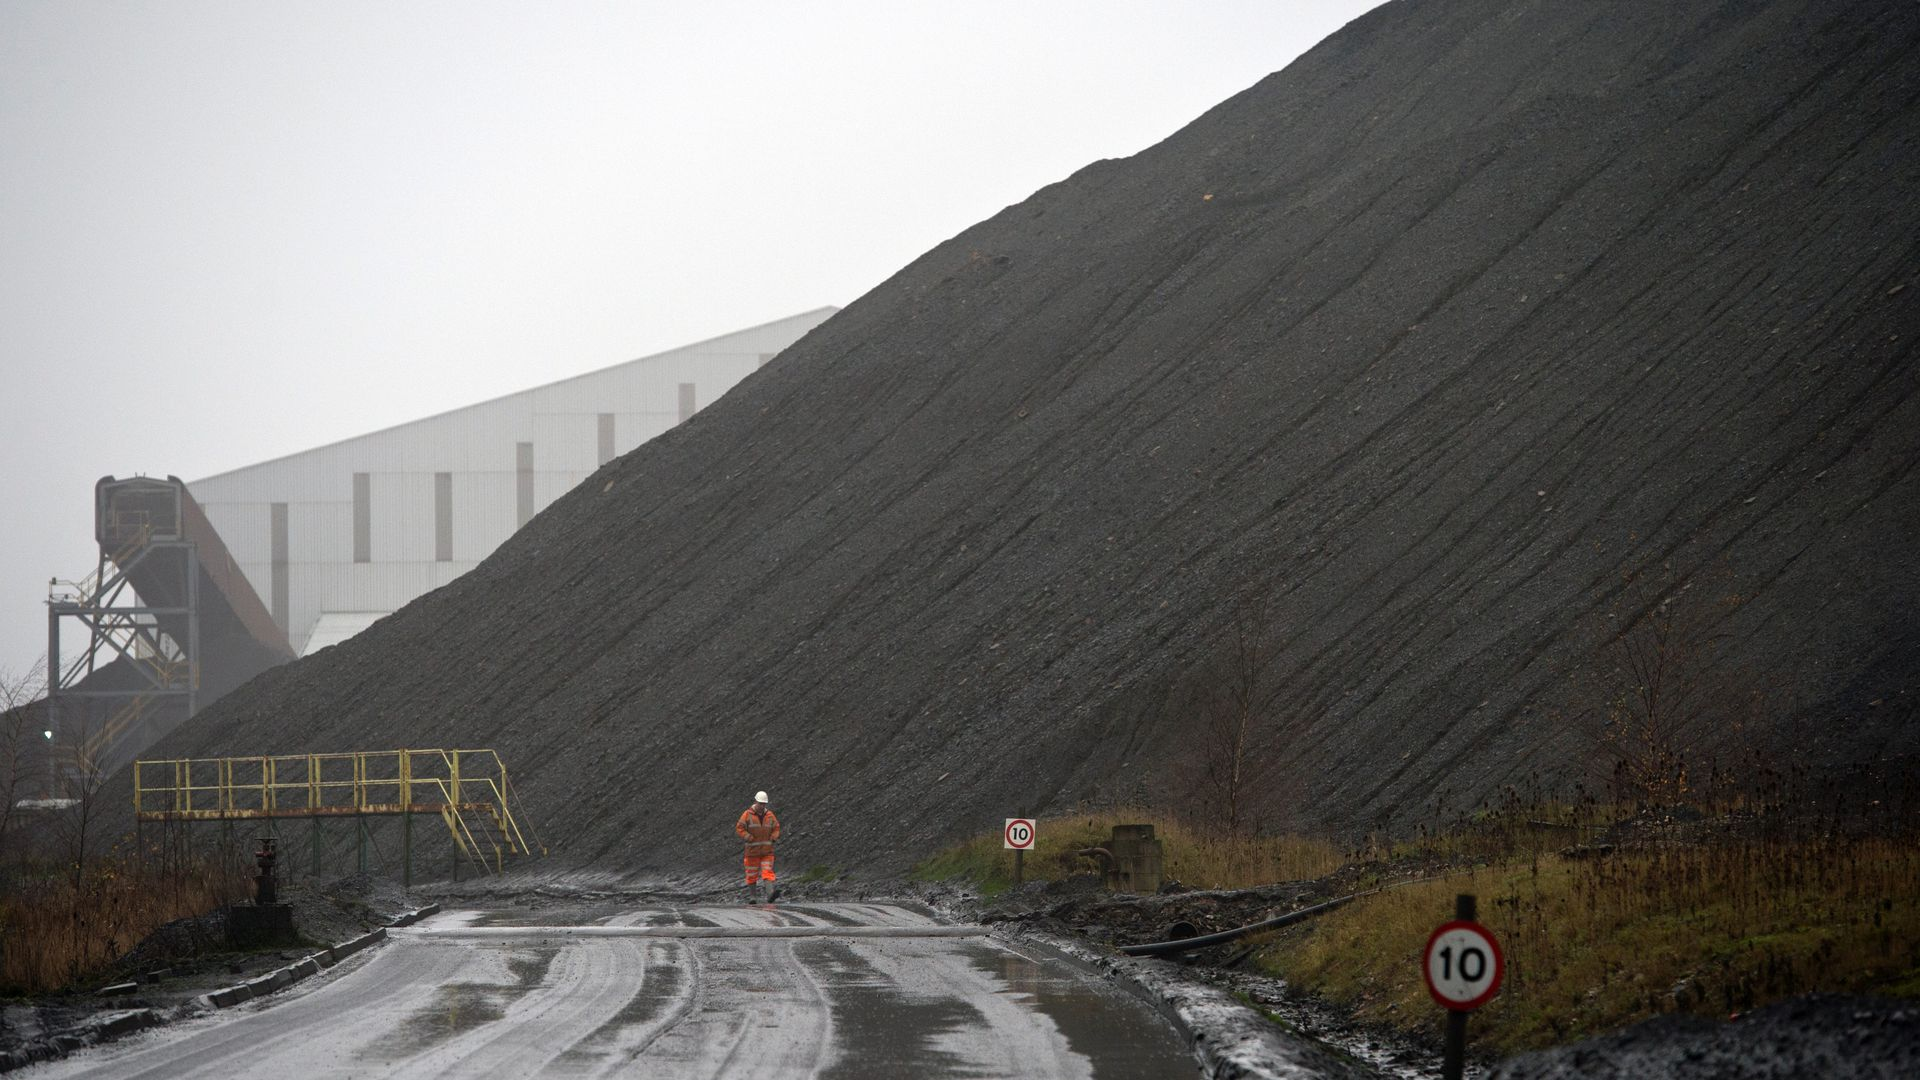 a slag heap at the entrance to Kellingley Colliery, the last deep coal mine operating in Britain near Knottingley, northern England